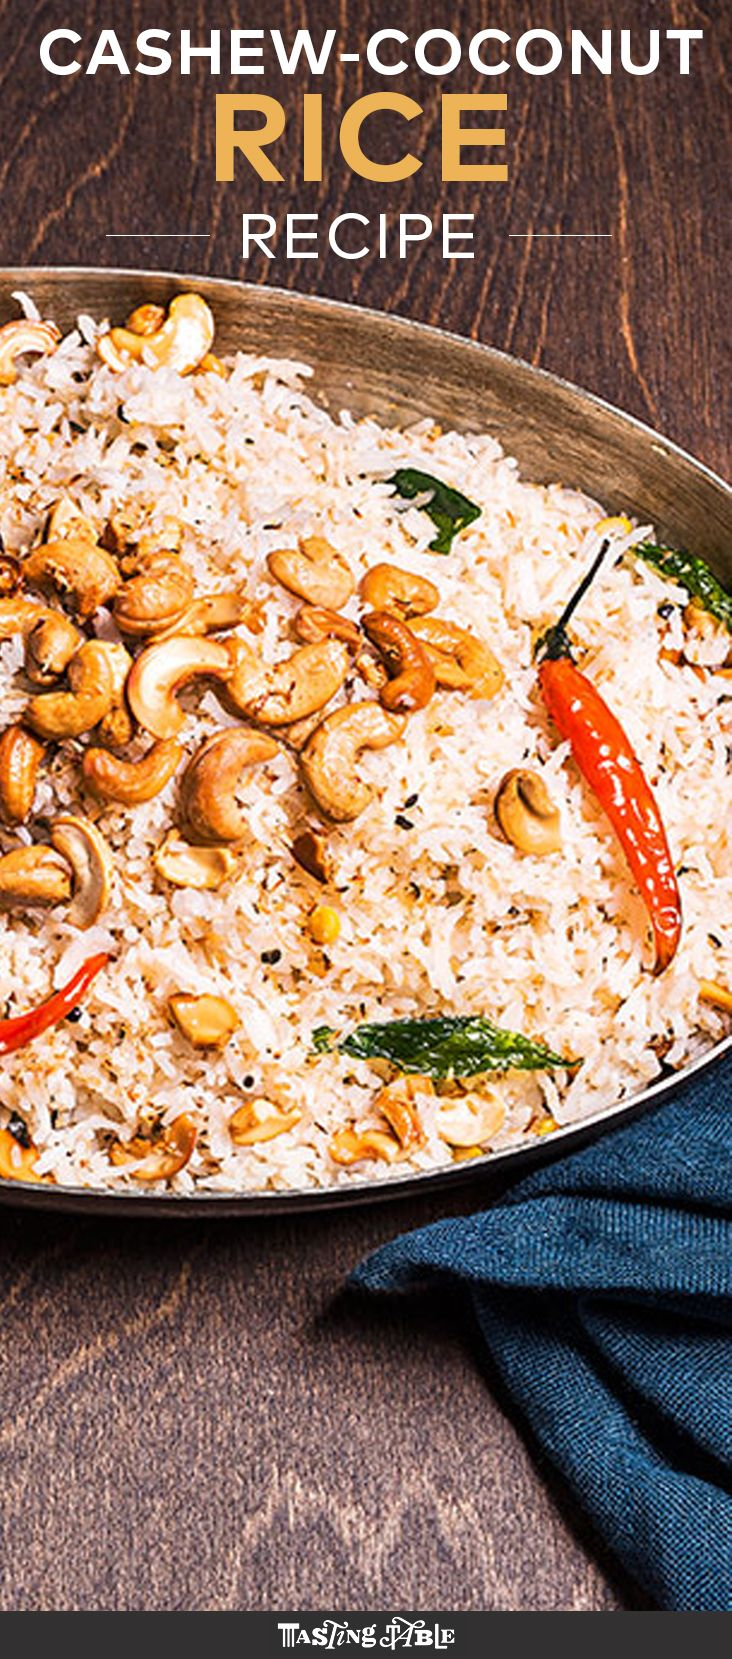 Spice up basmati rice with curry leaves, chiles and tons of coconut for a rich side dish.